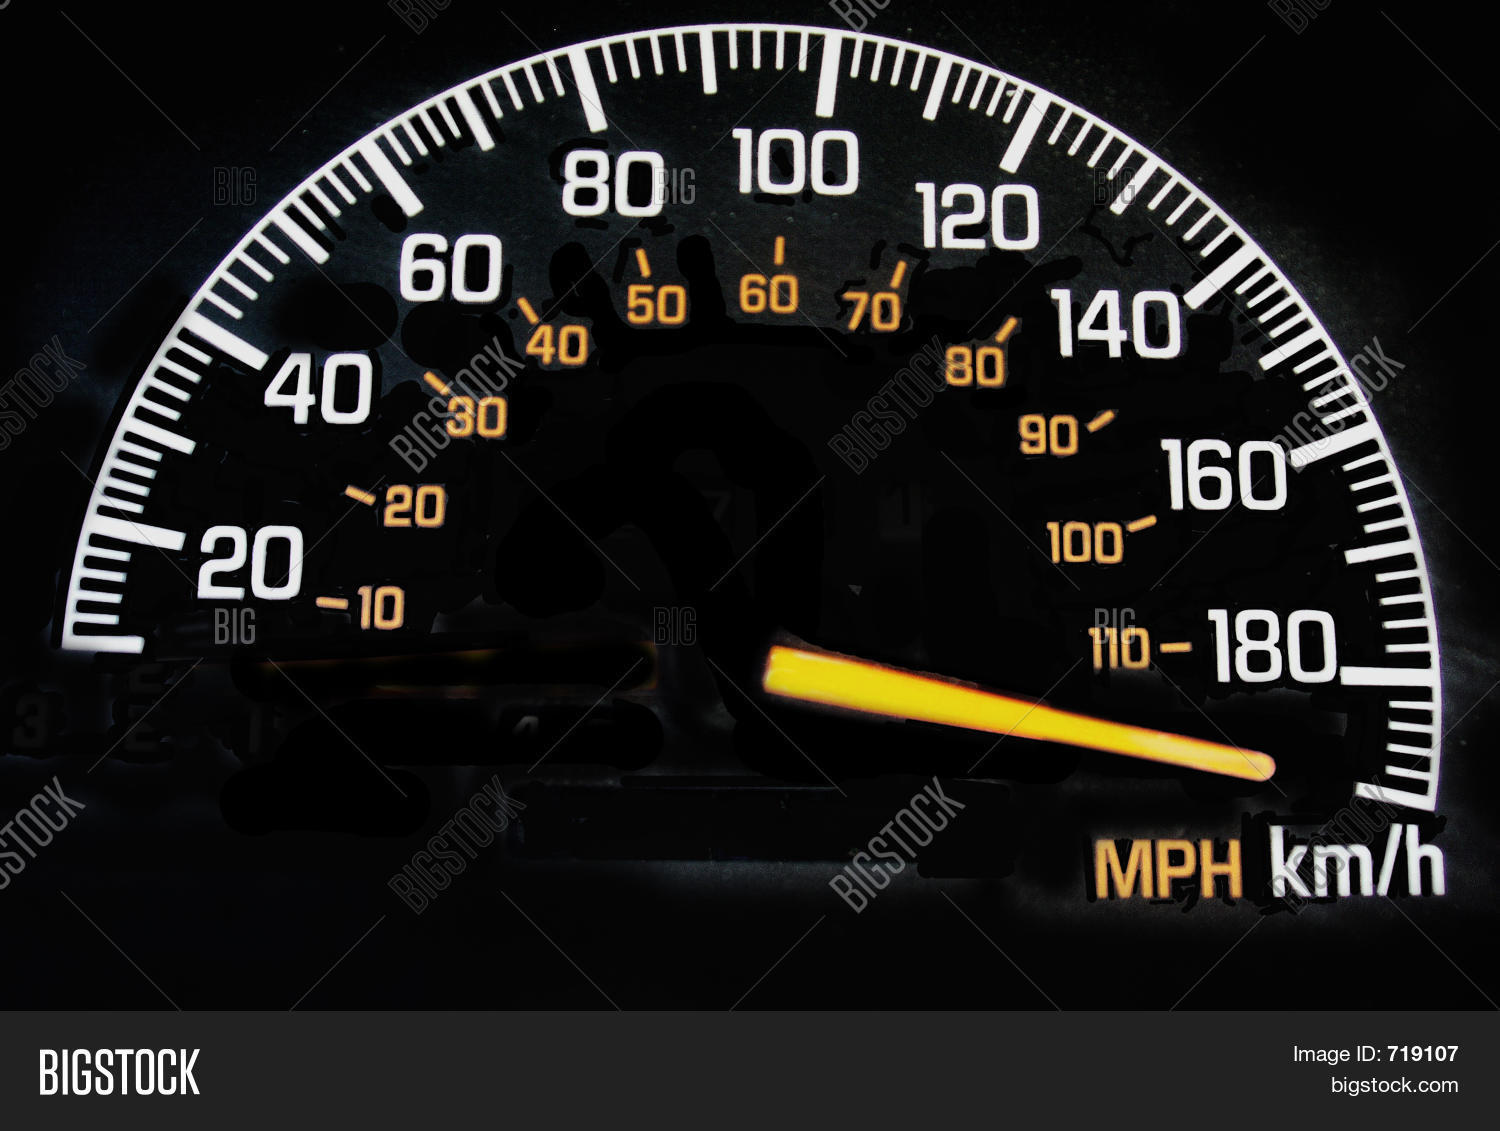 how to get maximum speeds